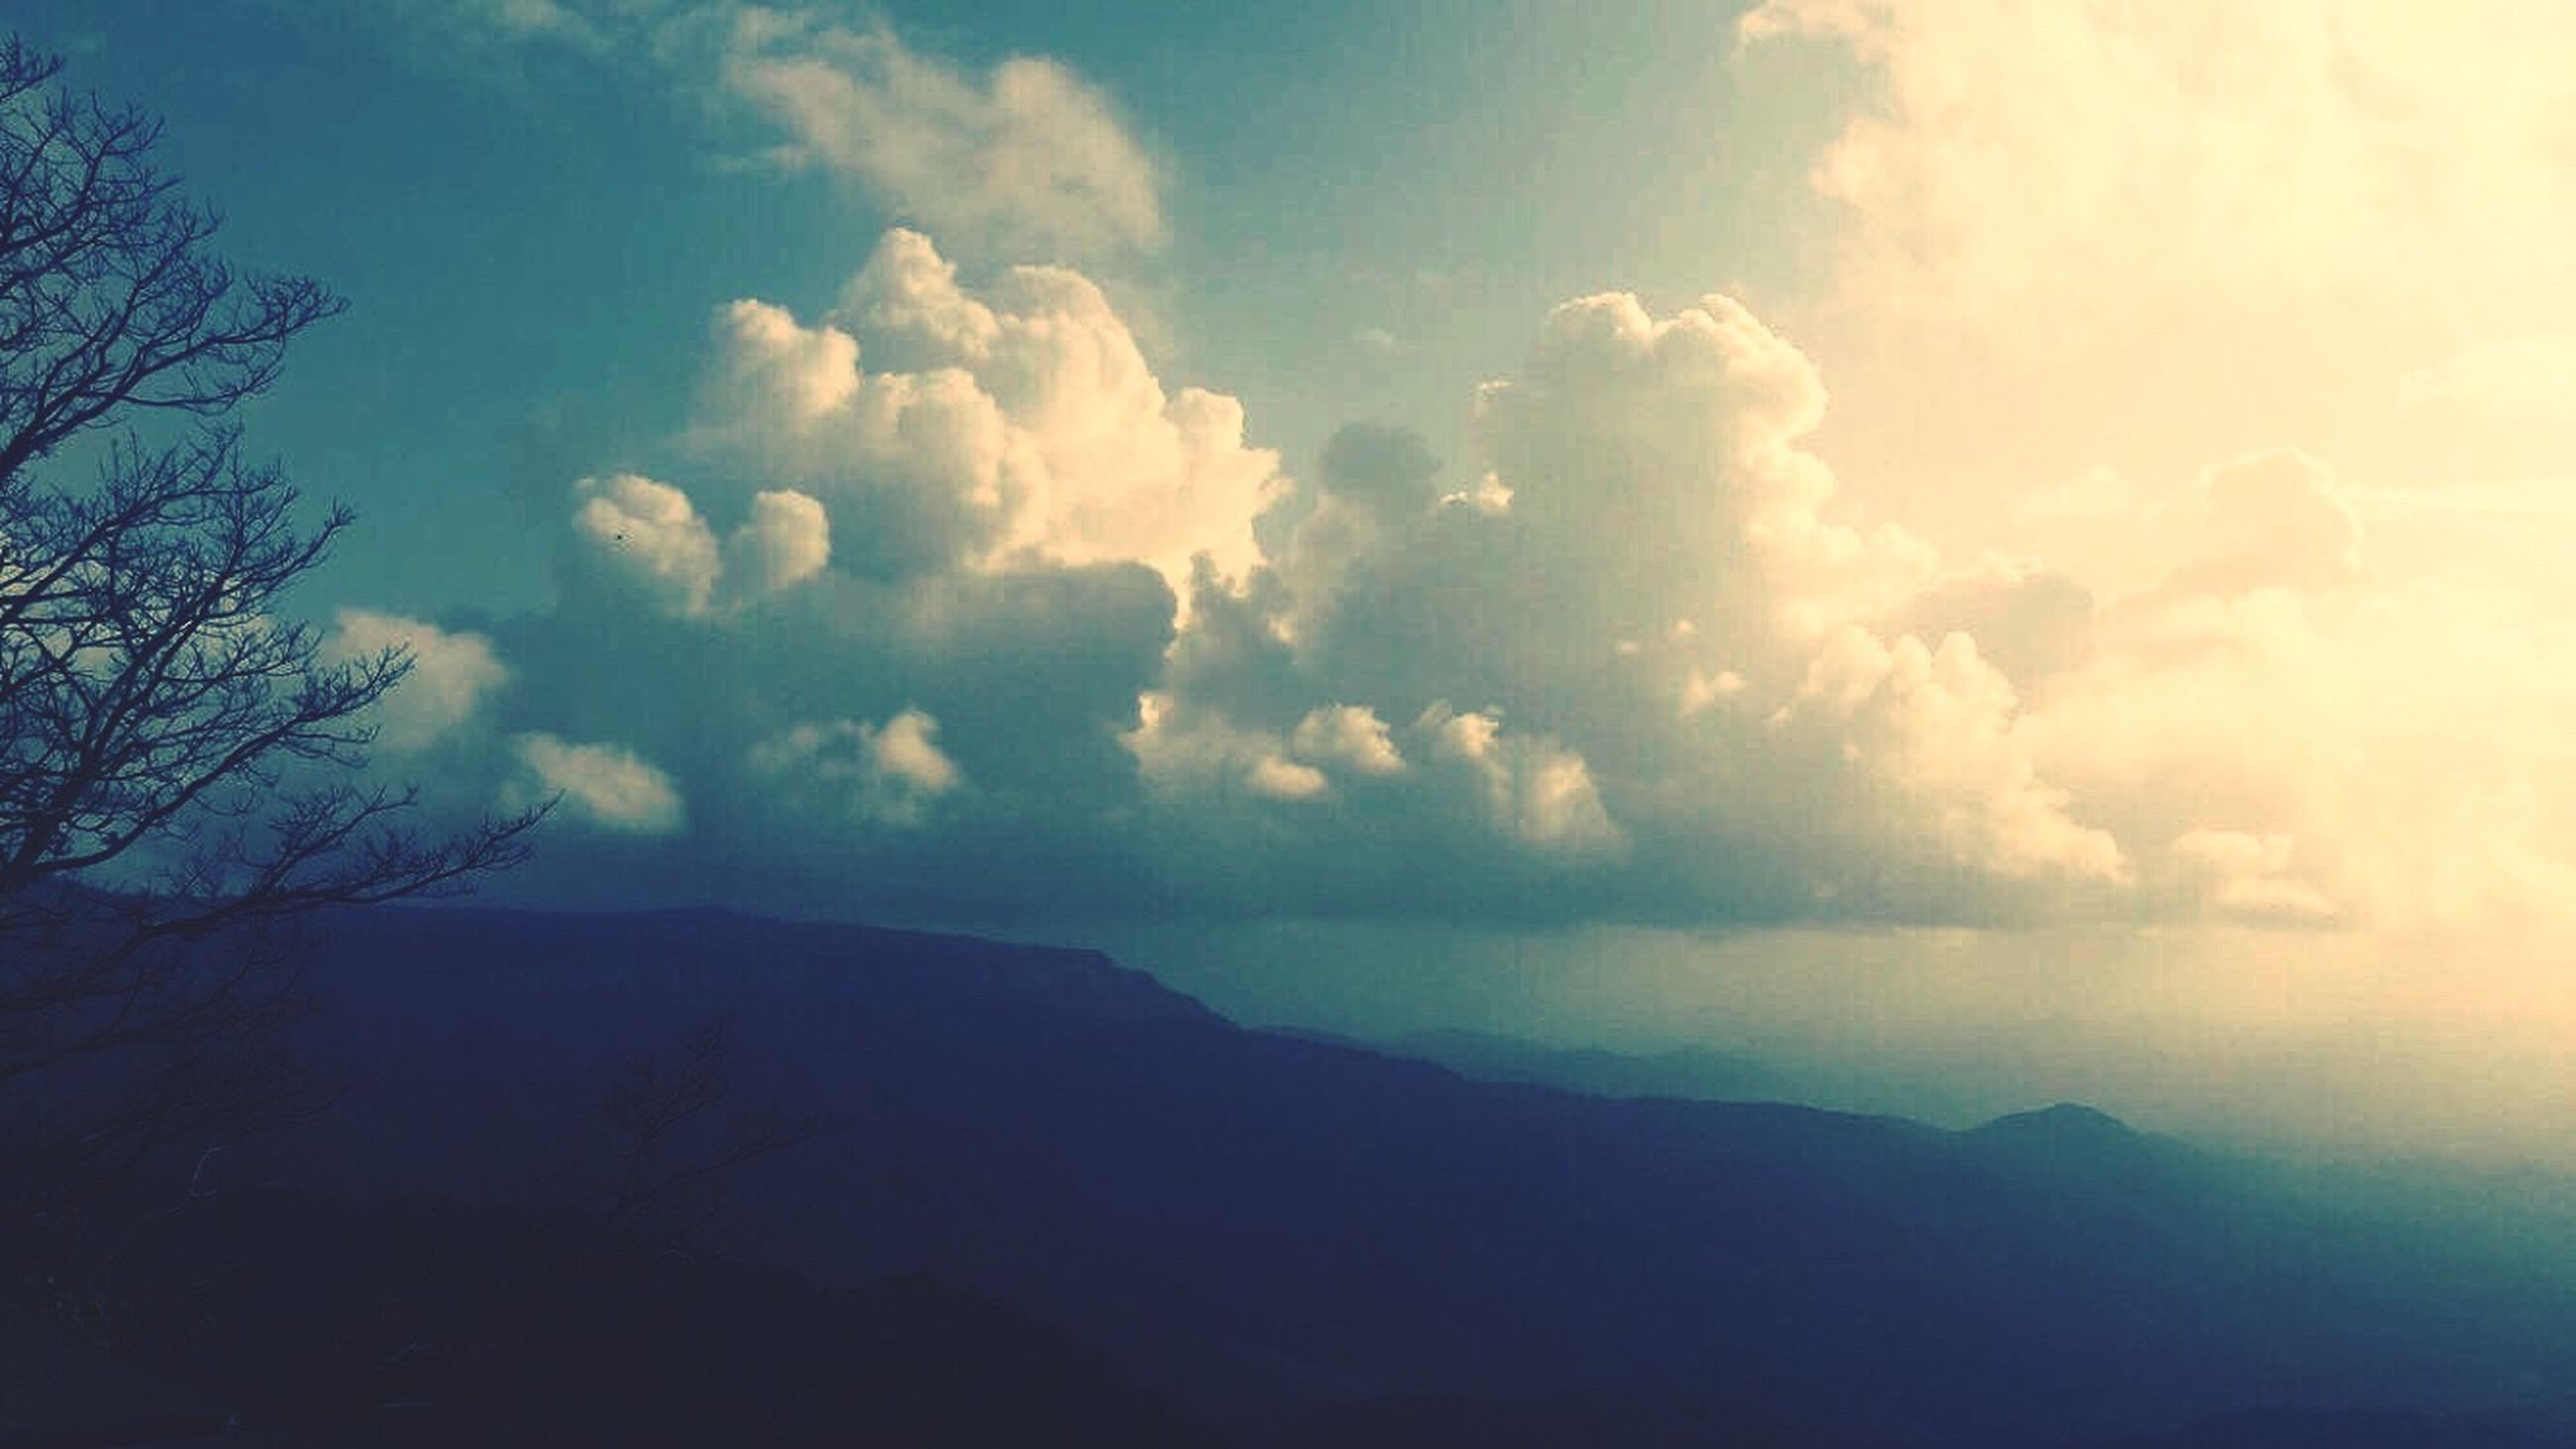 sky, scenics, tranquil scene, beauty in nature, tranquility, cloud, nature, cloud - sky, mountain, non-urban scene, outdoors, day, majestic, no people, cloudscape, solitude, remote, mountain range, cloudy